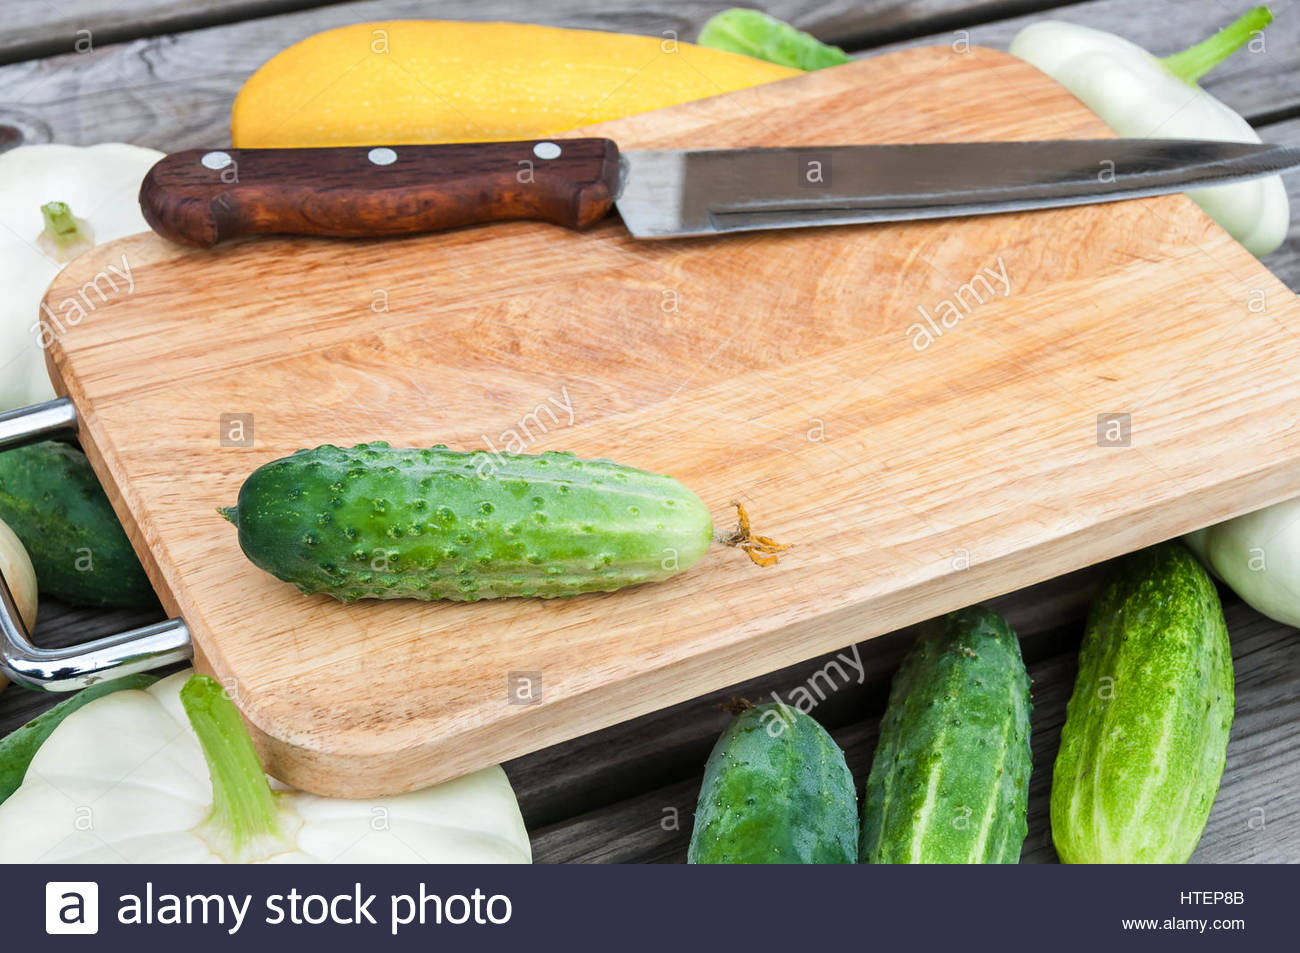 Cutting board, knife, fresh vegetables on wooden table.  Top view with copy space. - Stock Image